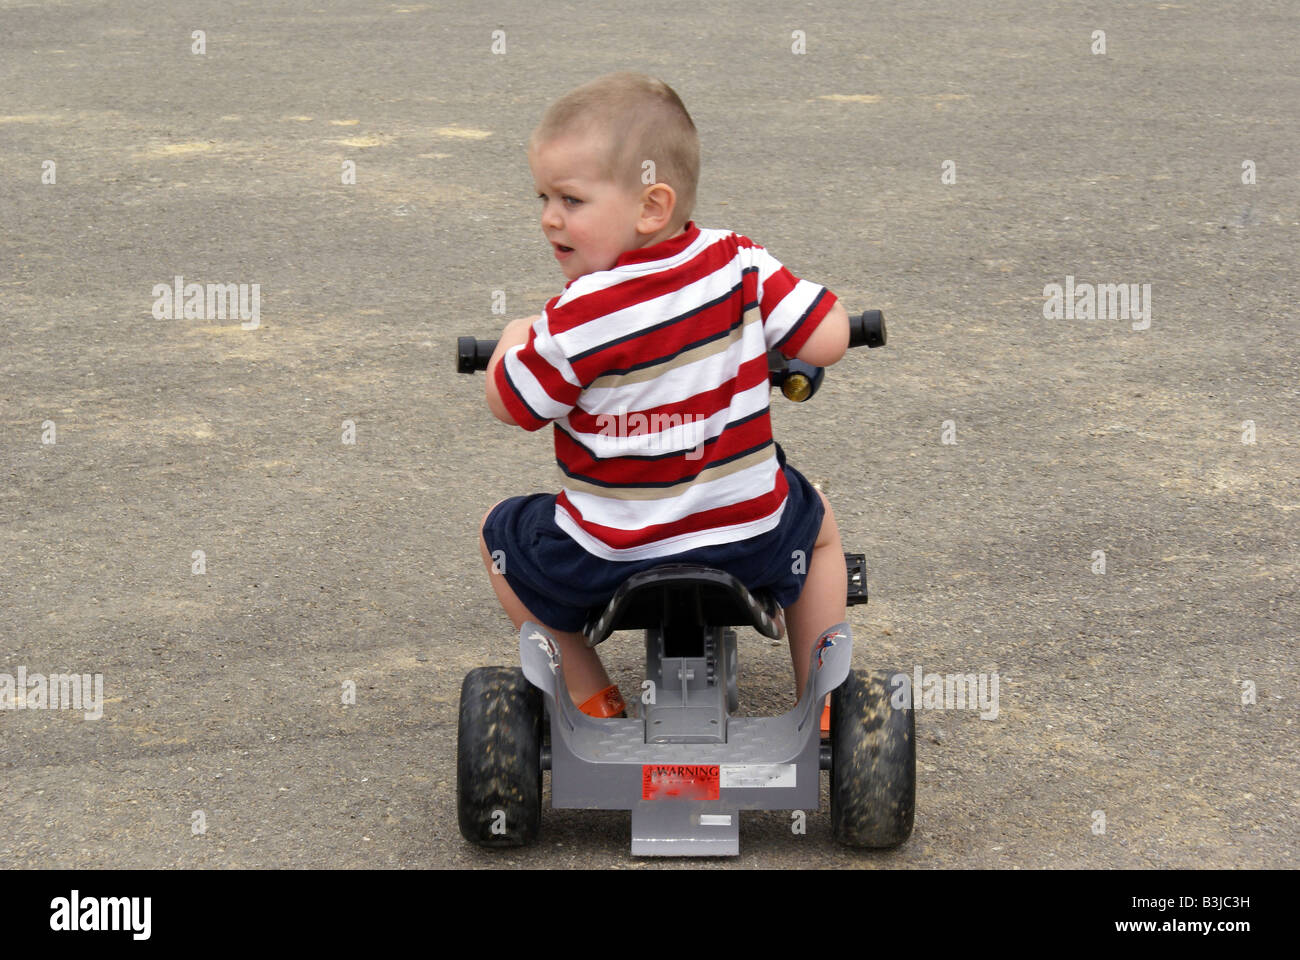 Riding Tricycle - Stock Image